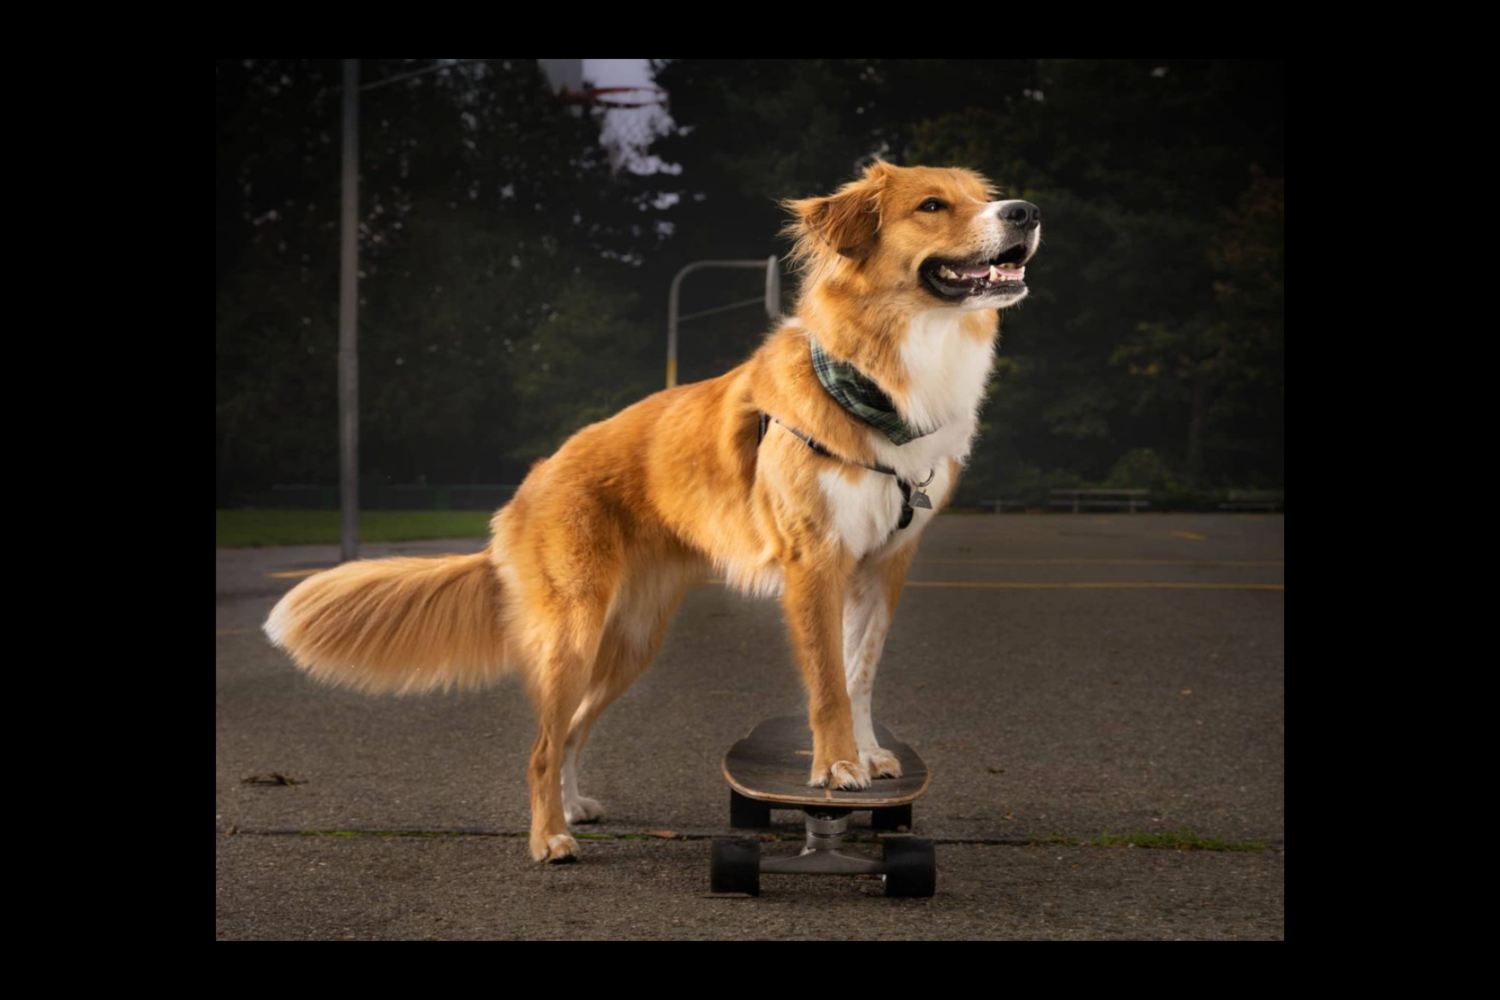 Darrel the Doge is a local pup who took up skateboarding nine months ago, and how he's a star! (Image: @erinlynchphoto)